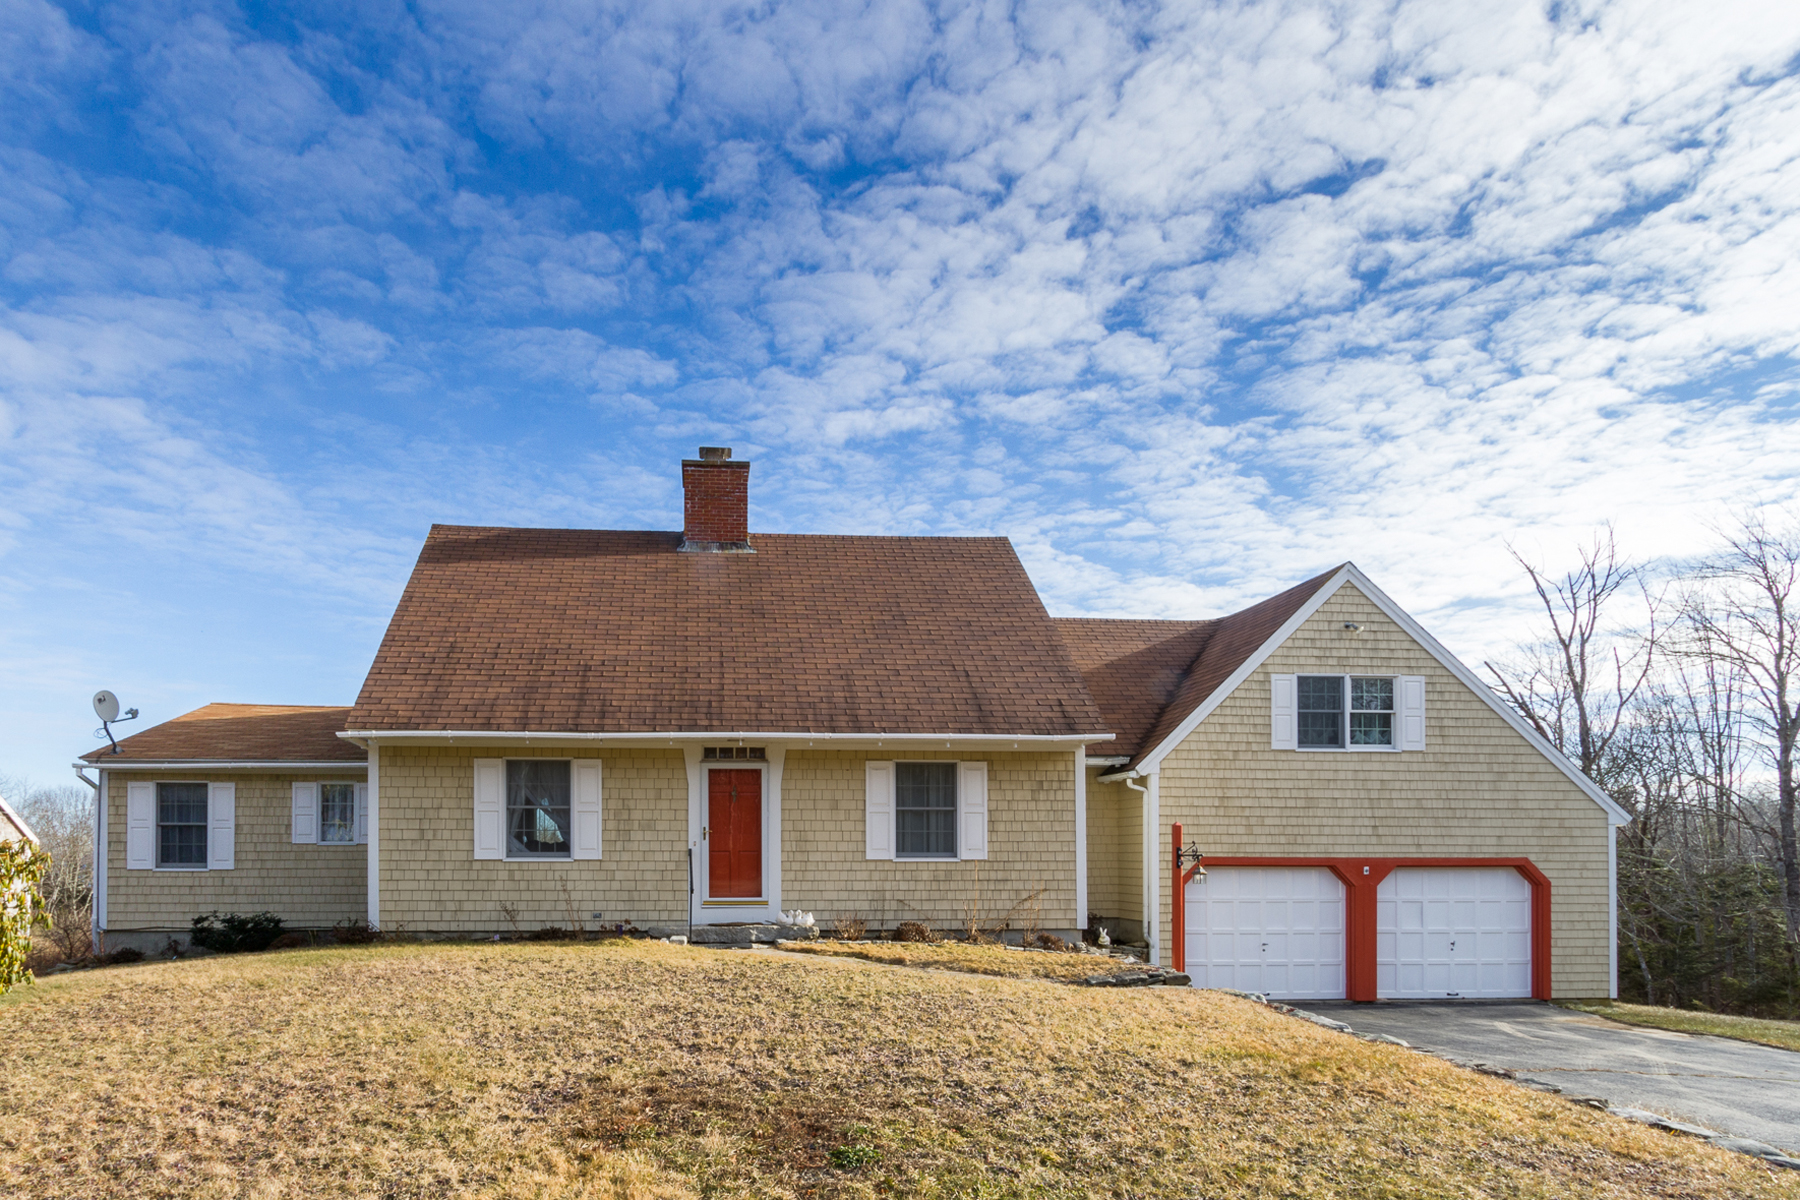 46 Old Mill Rd, New Harbor, ME 04554